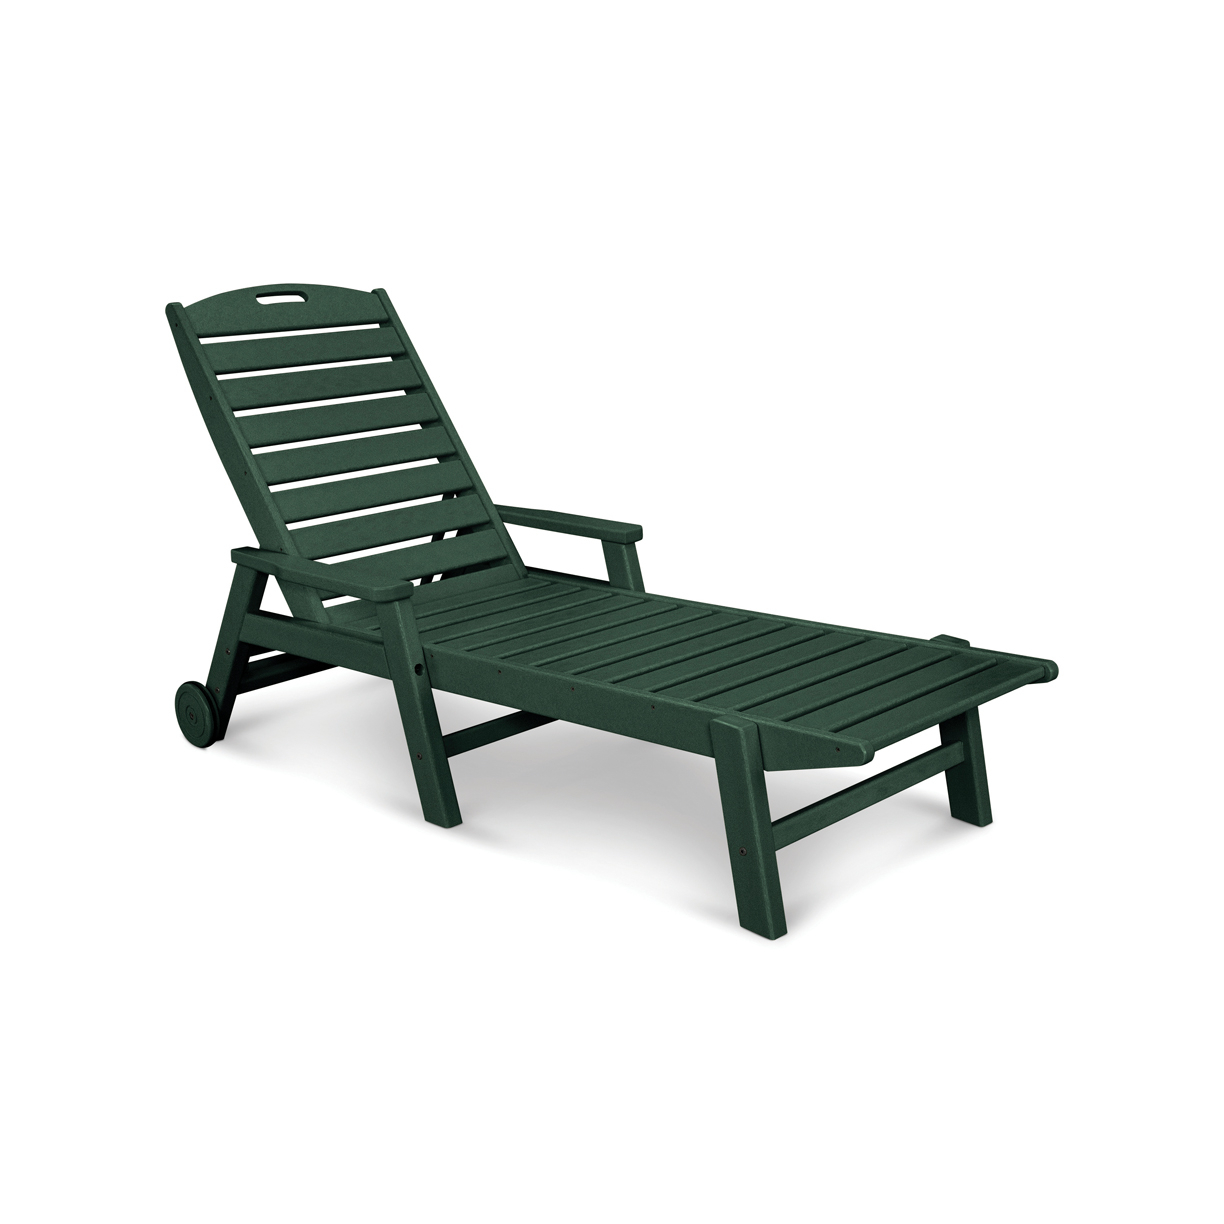 Widely Used Polywood Nautical Recycled Plastic Folding Chaise Lounge With Arms And Wheels For Plastic Chaise Lounges W/ Wheels (View 6 of 25)